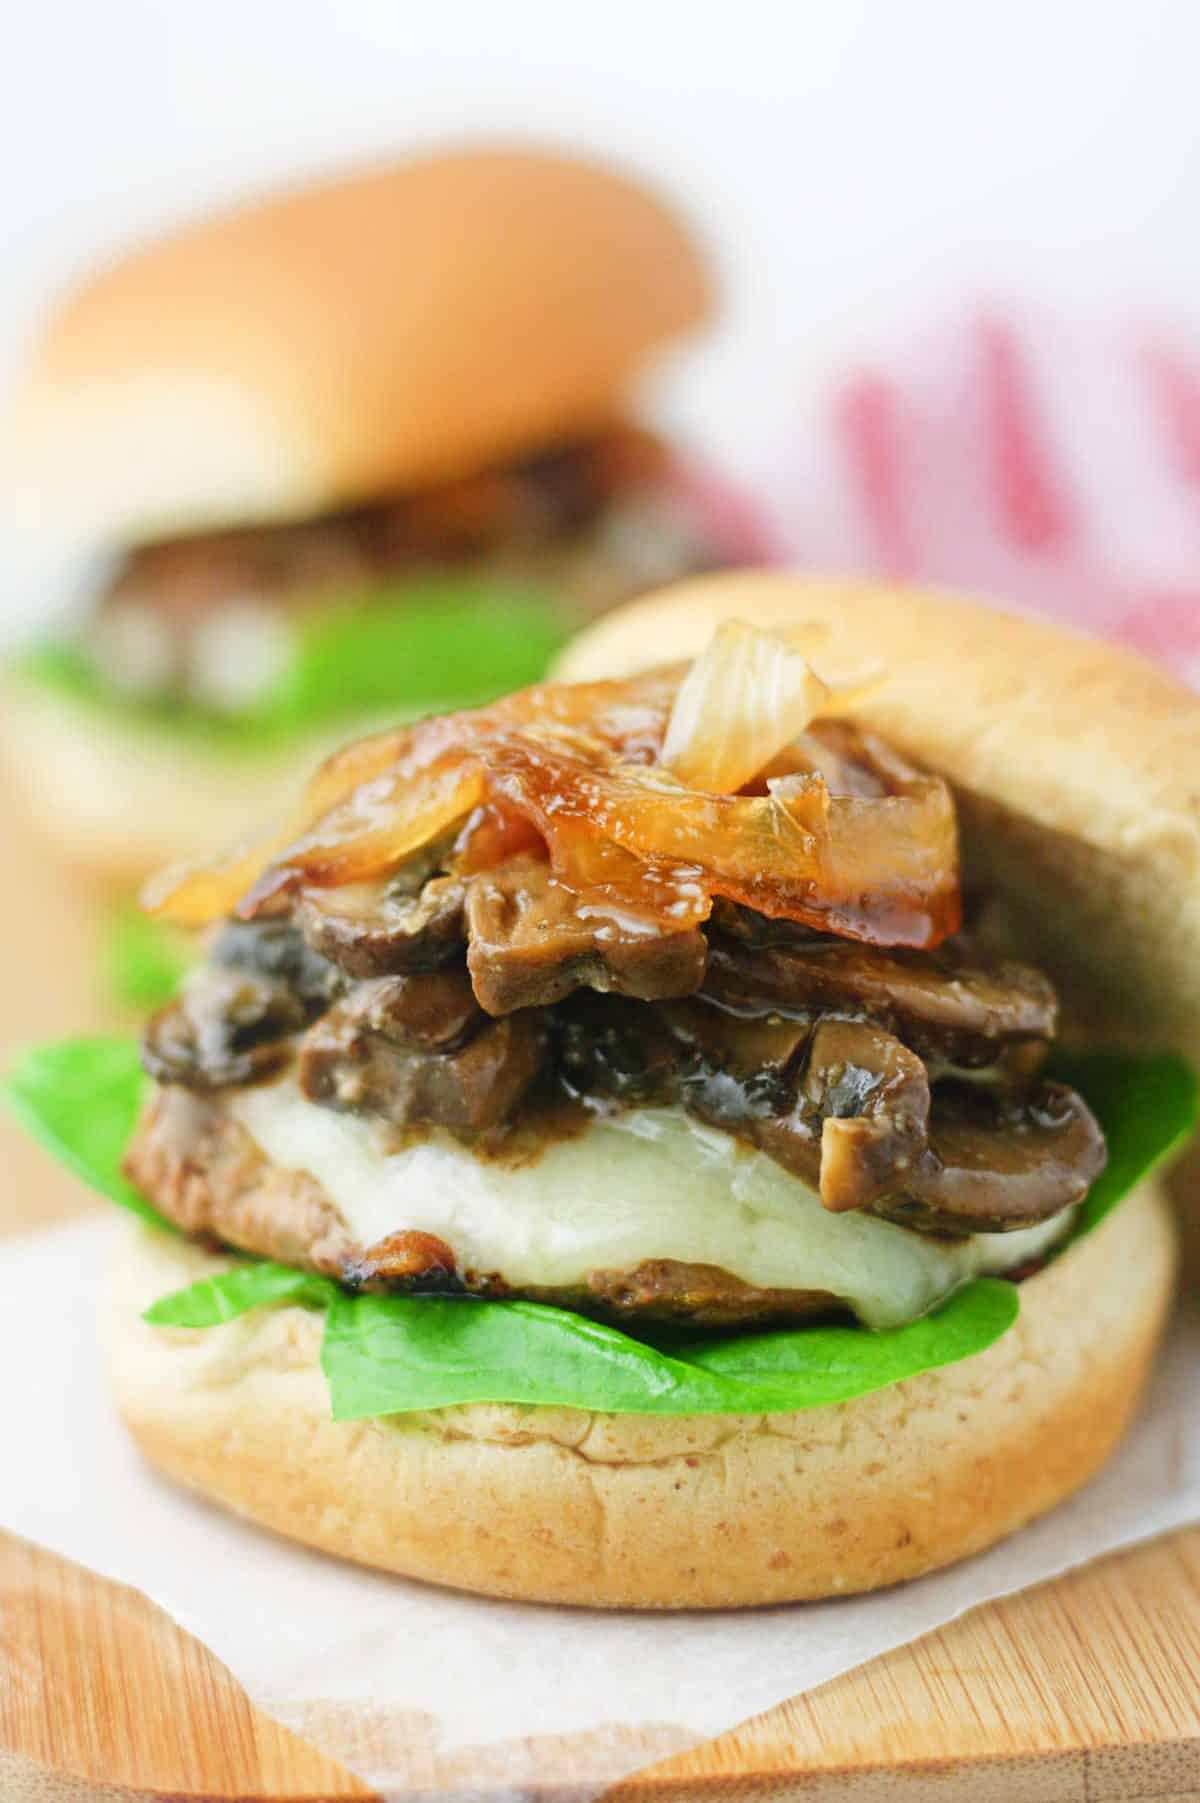 Honey balsamic mushrooms and caramelized onions on a lean turkey patty. The perfect, healthy and easy barbecue recipe! www.itscheatdayeveryday.com